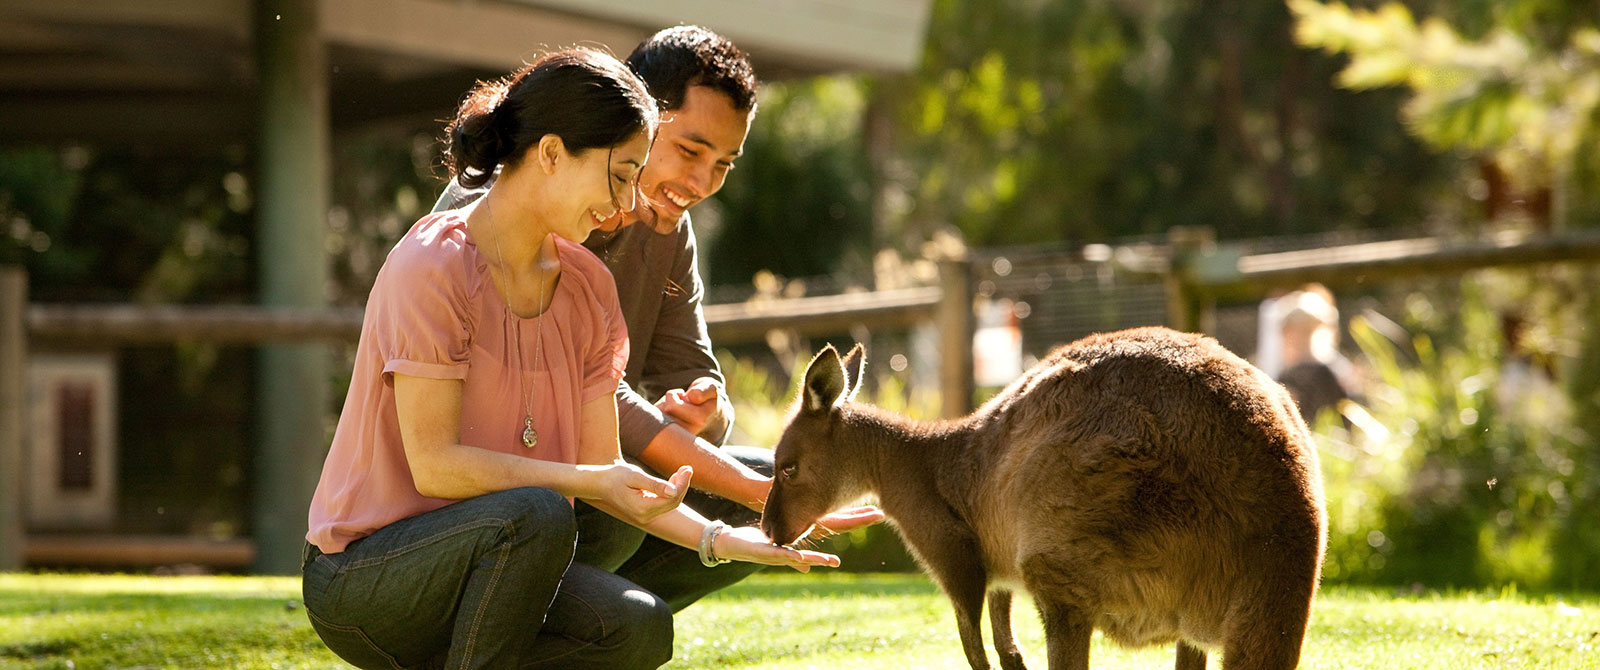 Feeding Kangaroo - Australia New Zealand Vacation Packages